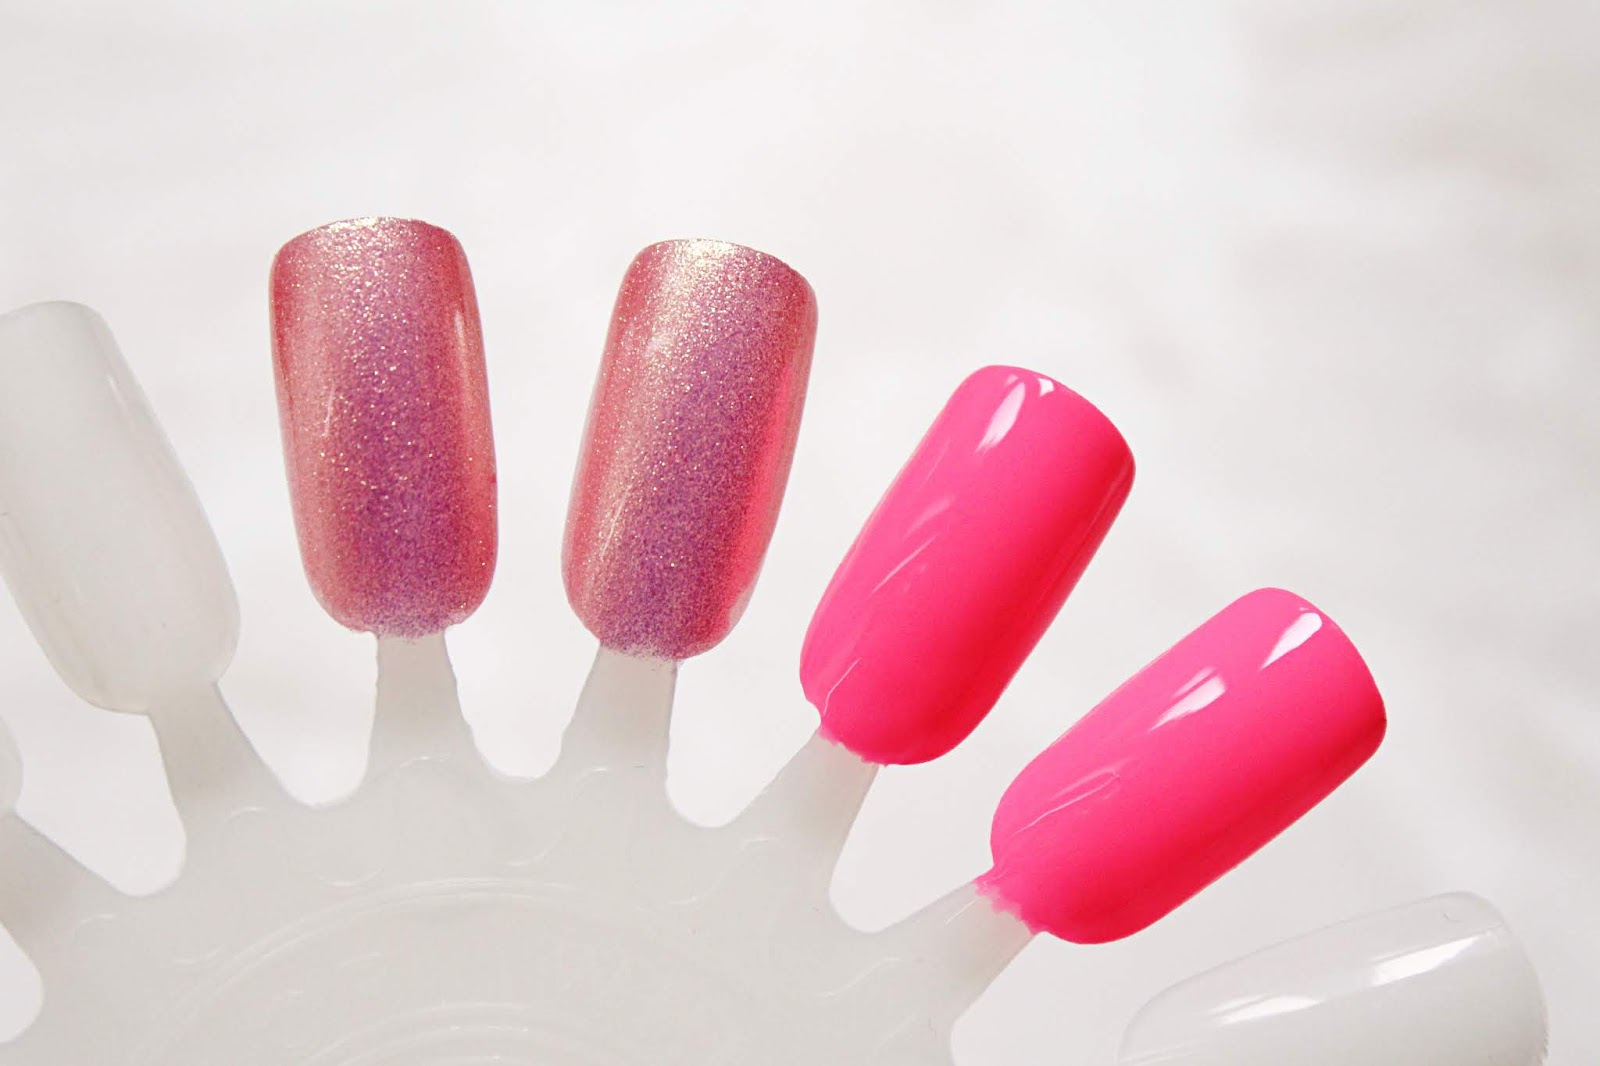 Nails Inc Flock You Duo Review & Swatches